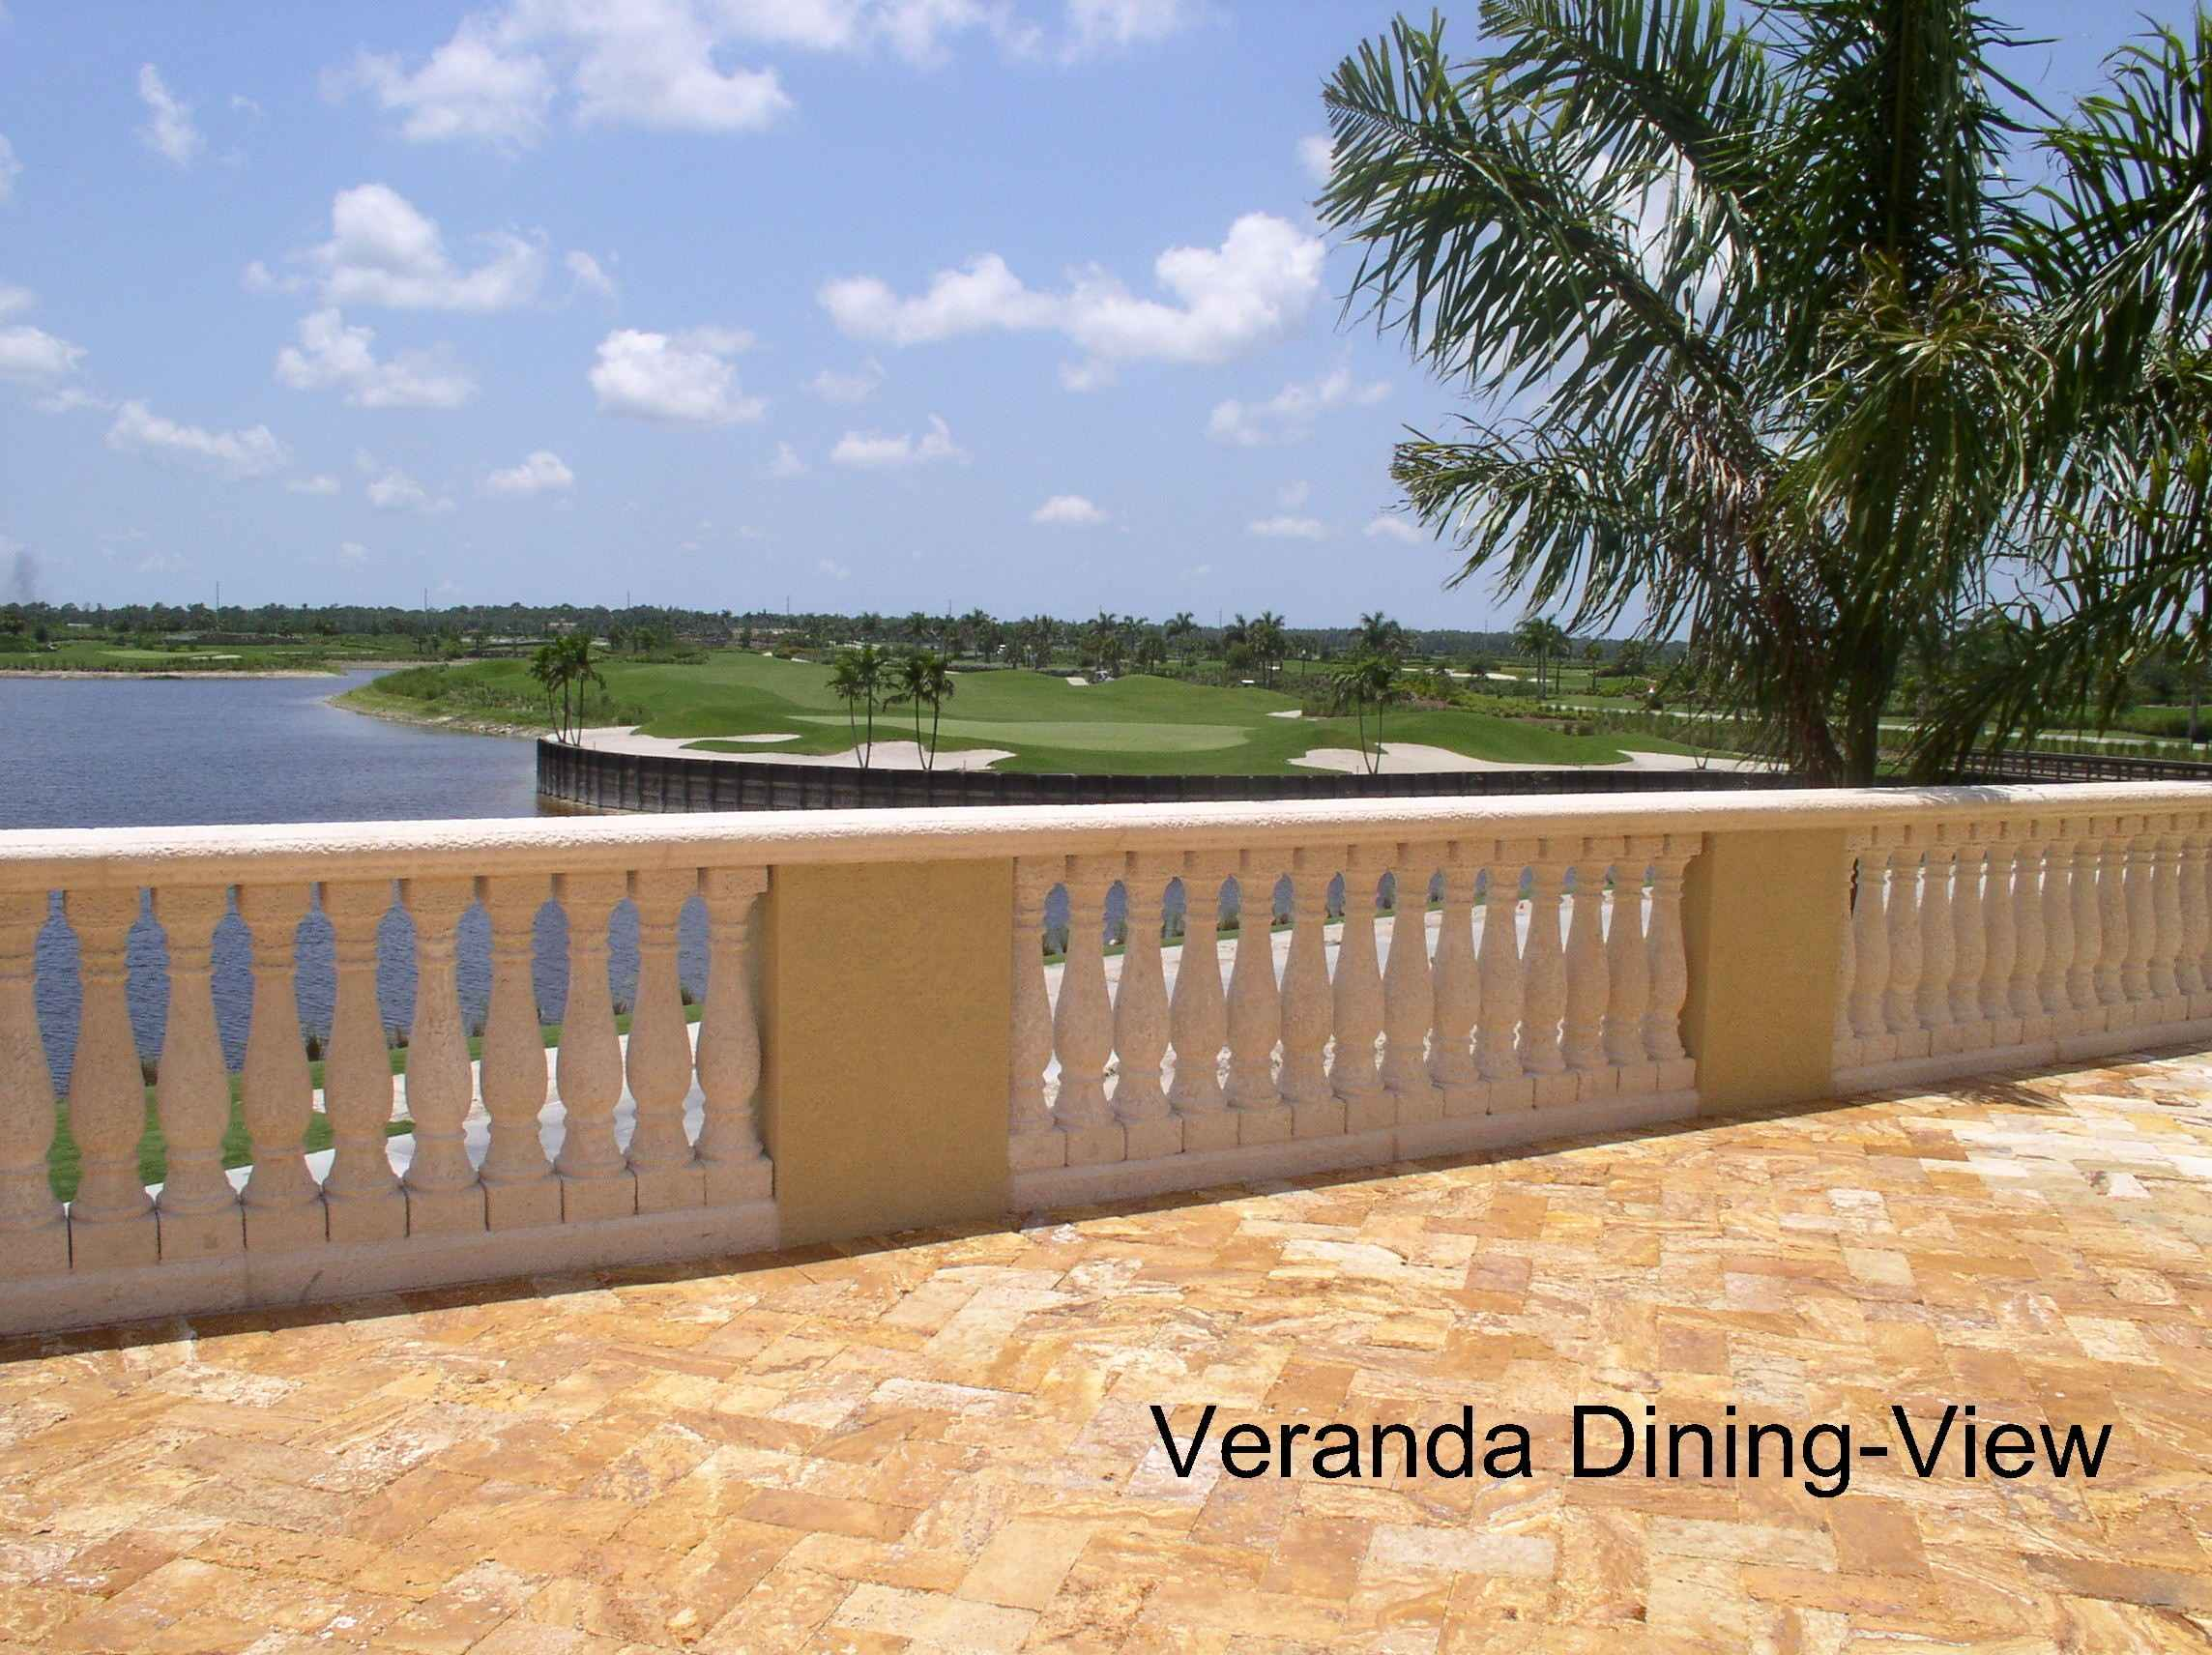 Outdoor Veranda Dining